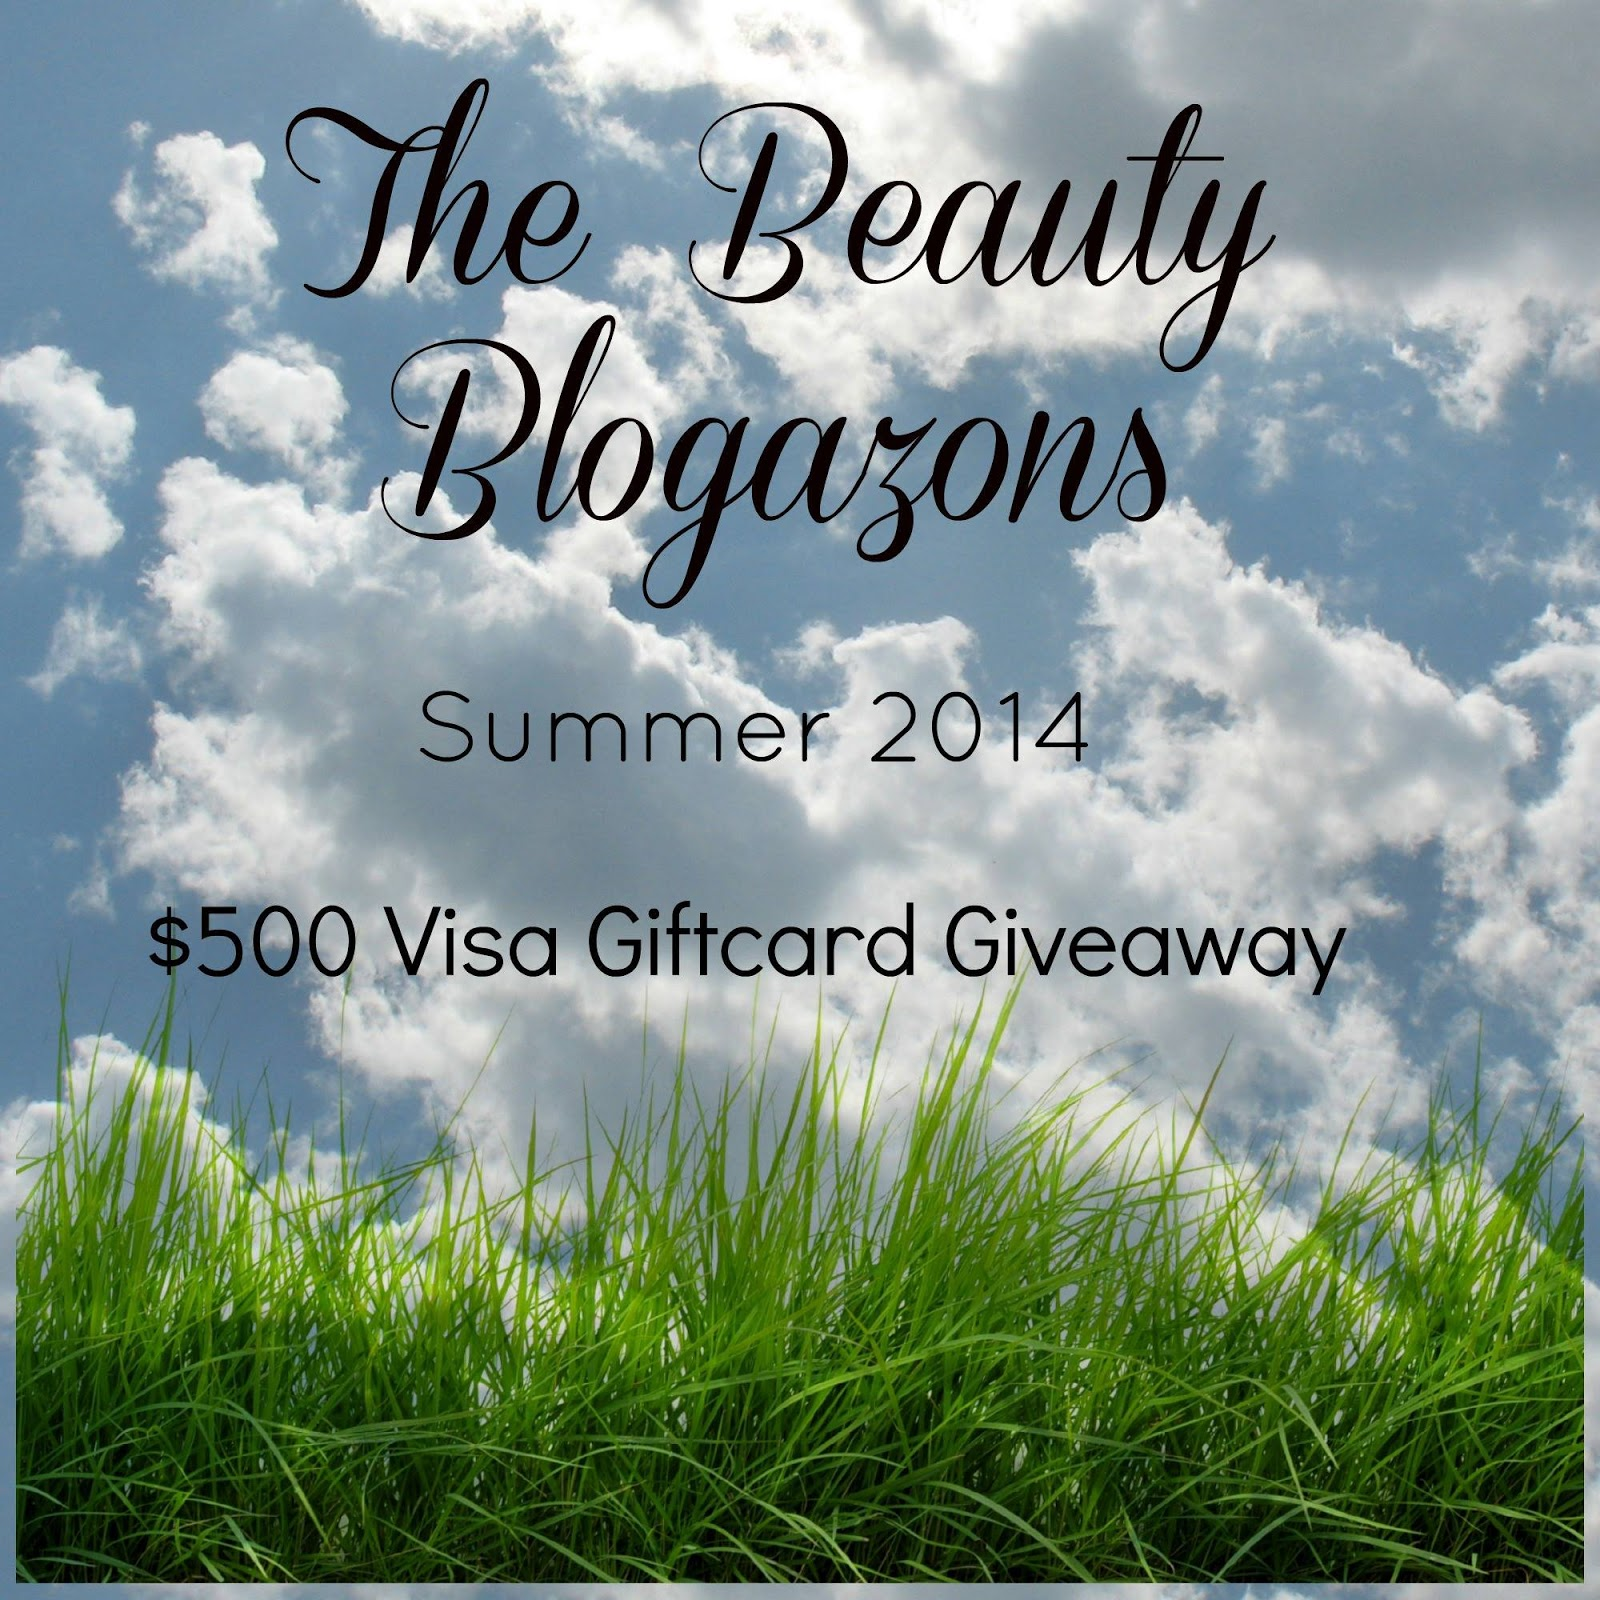 Beauty Blogazons Summer 2014 Giveaway